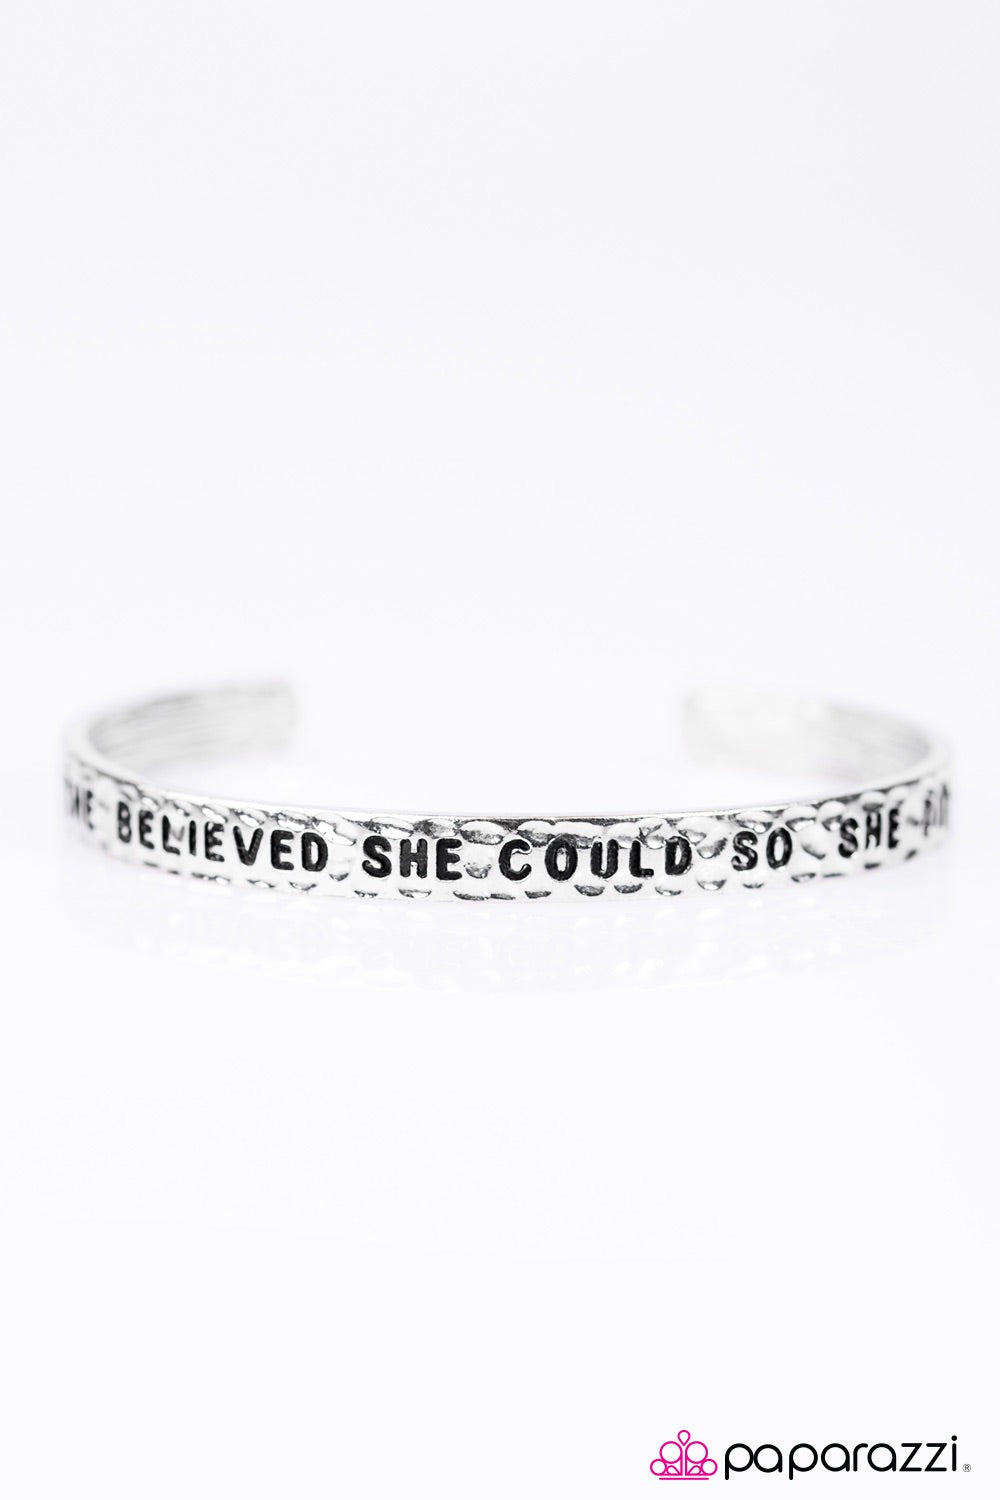 Paparazzi Jewelry Inspirational She Believed She Could - Silver